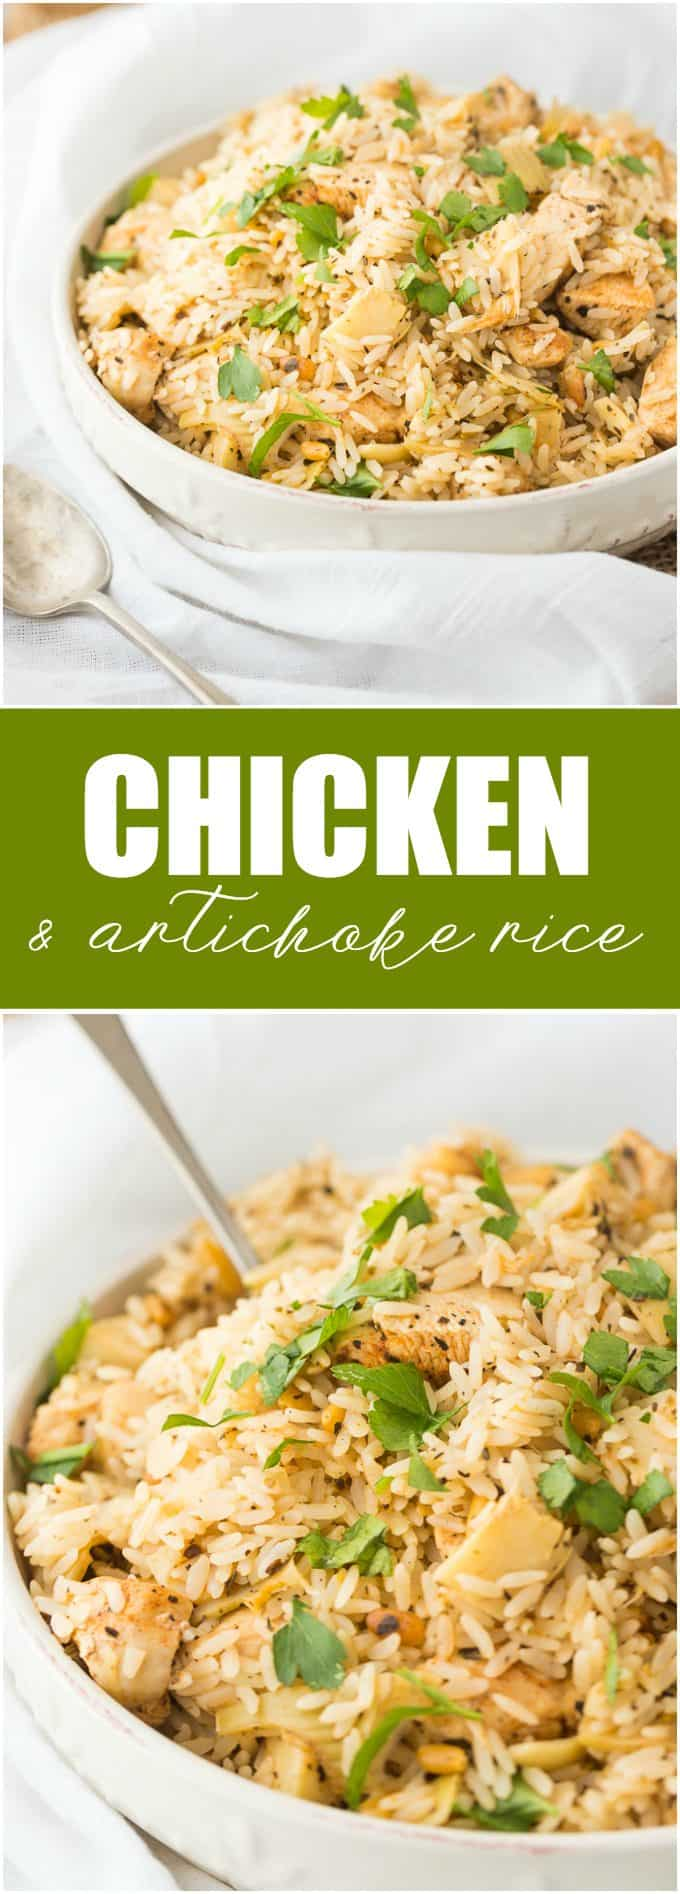 Chicken & Artichoke Rice - An easy meal your family will love!